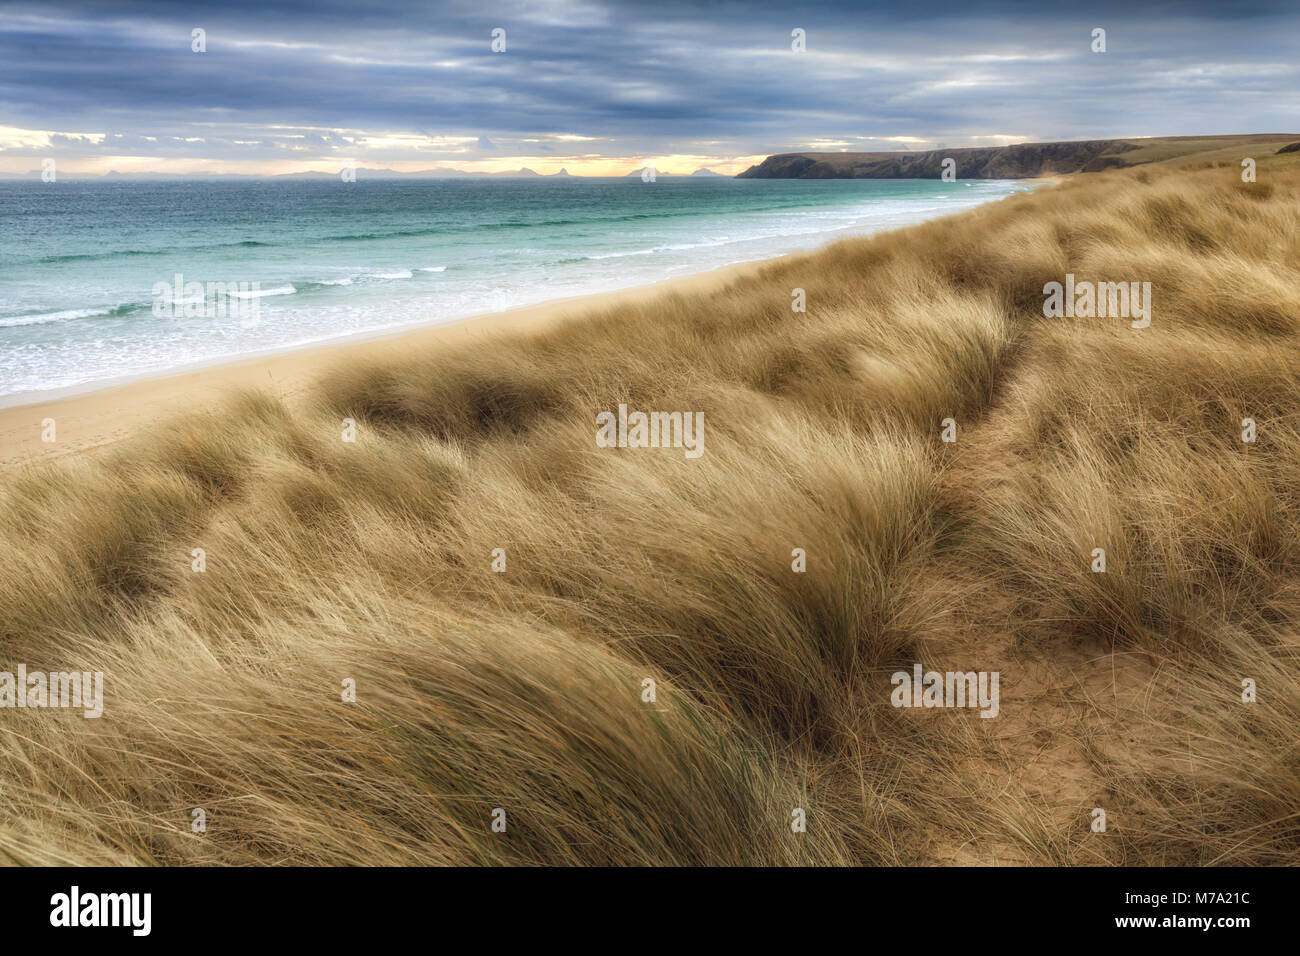 Beach at Traigh Mhòr, Isle of Lewis, Outer Hebrides, Scotland - Stock Image